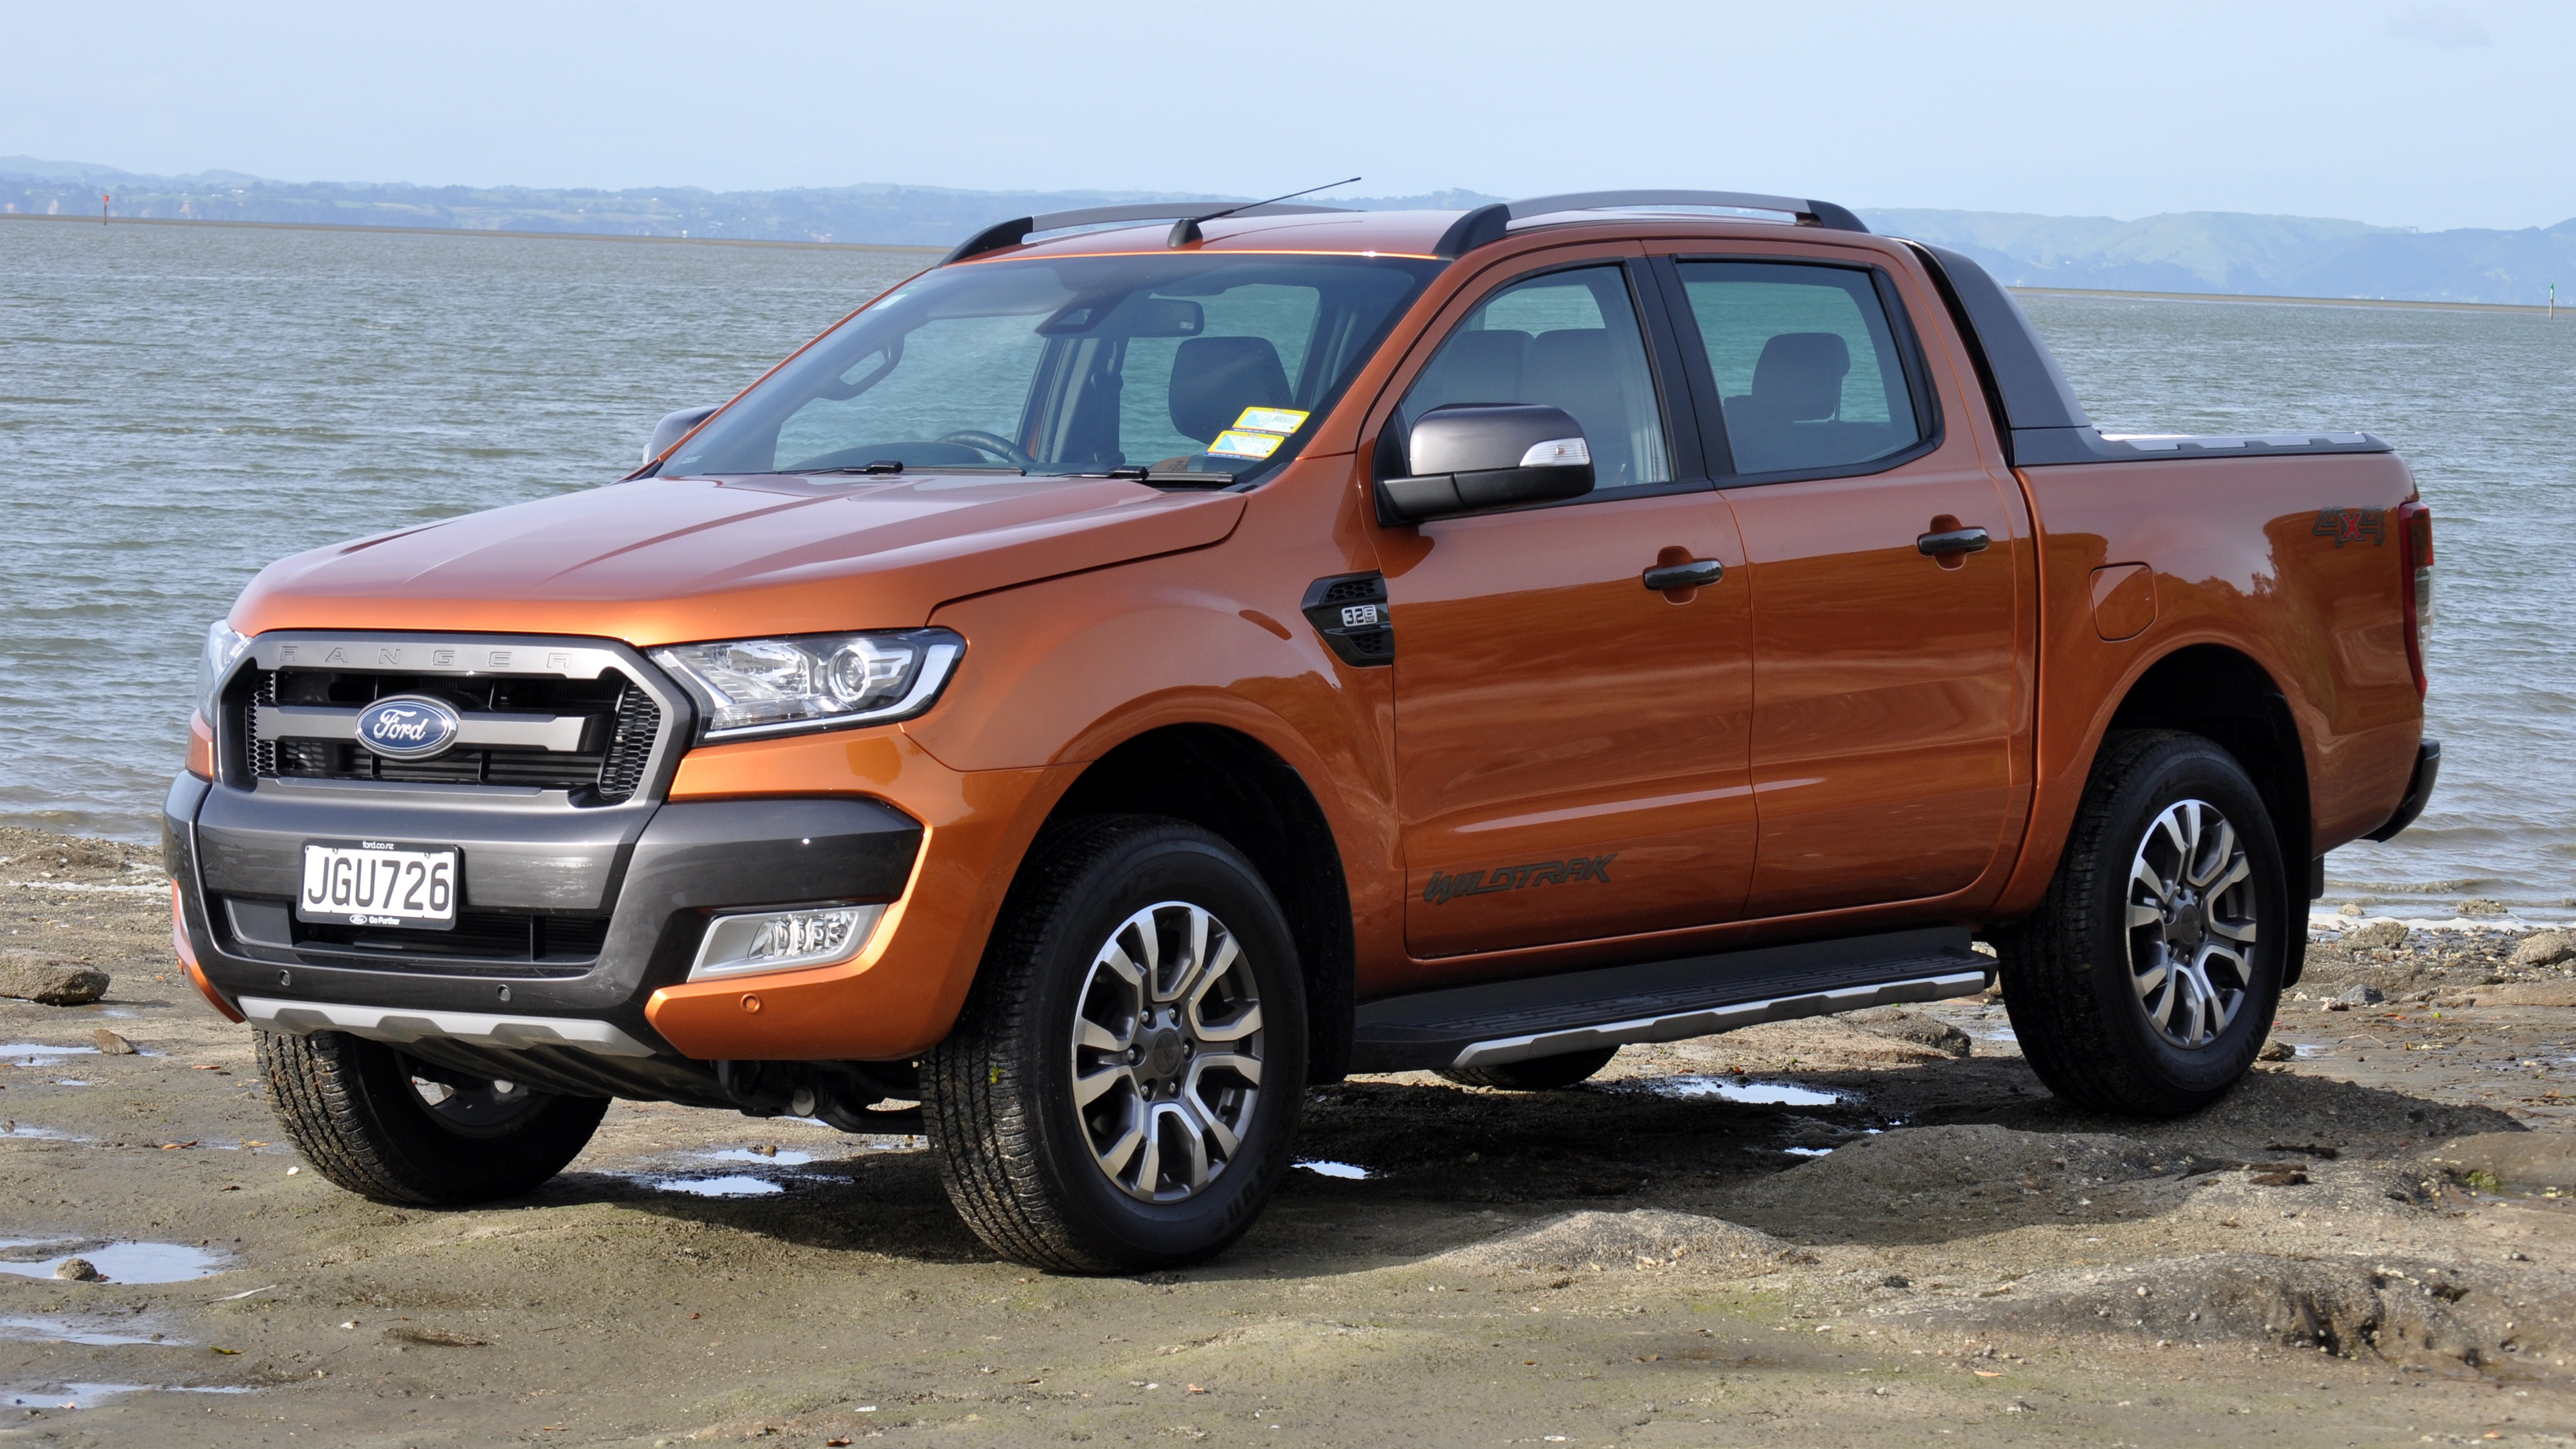 2016 ford ranger wildtrak 4k wallpaper hd car wallpapers id 7210. Black Bedroom Furniture Sets. Home Design Ideas